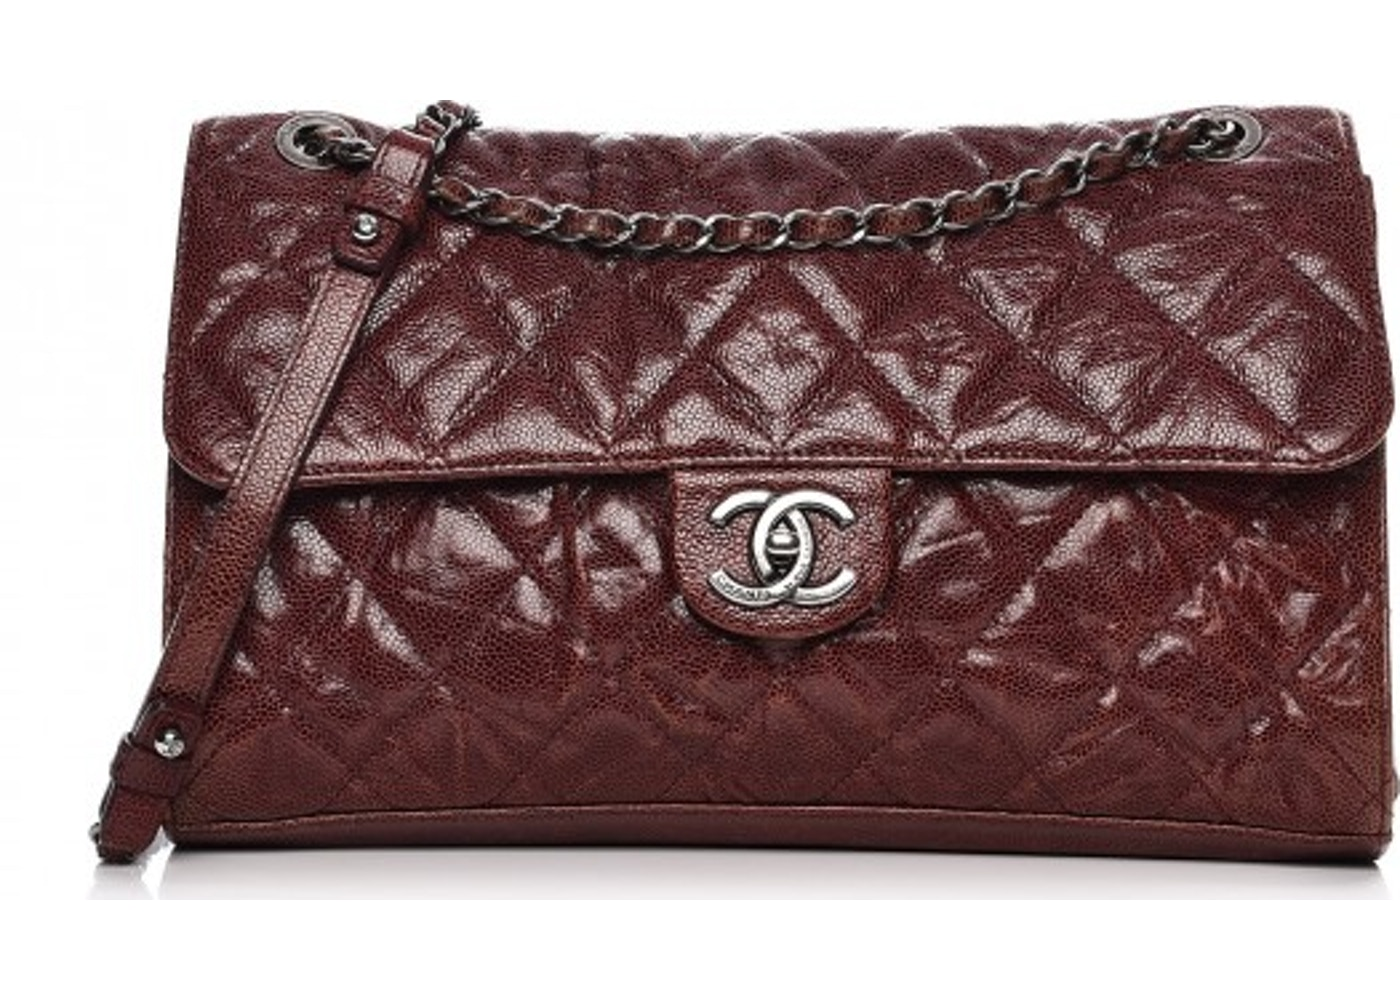 932bf7d8e788 Chanel CC Crave Flap Diamond Quilted Crumpled/Grained Jumbo Burgundy.  Diamond Quilted Crumpled/Grained Jumbo Burgundy